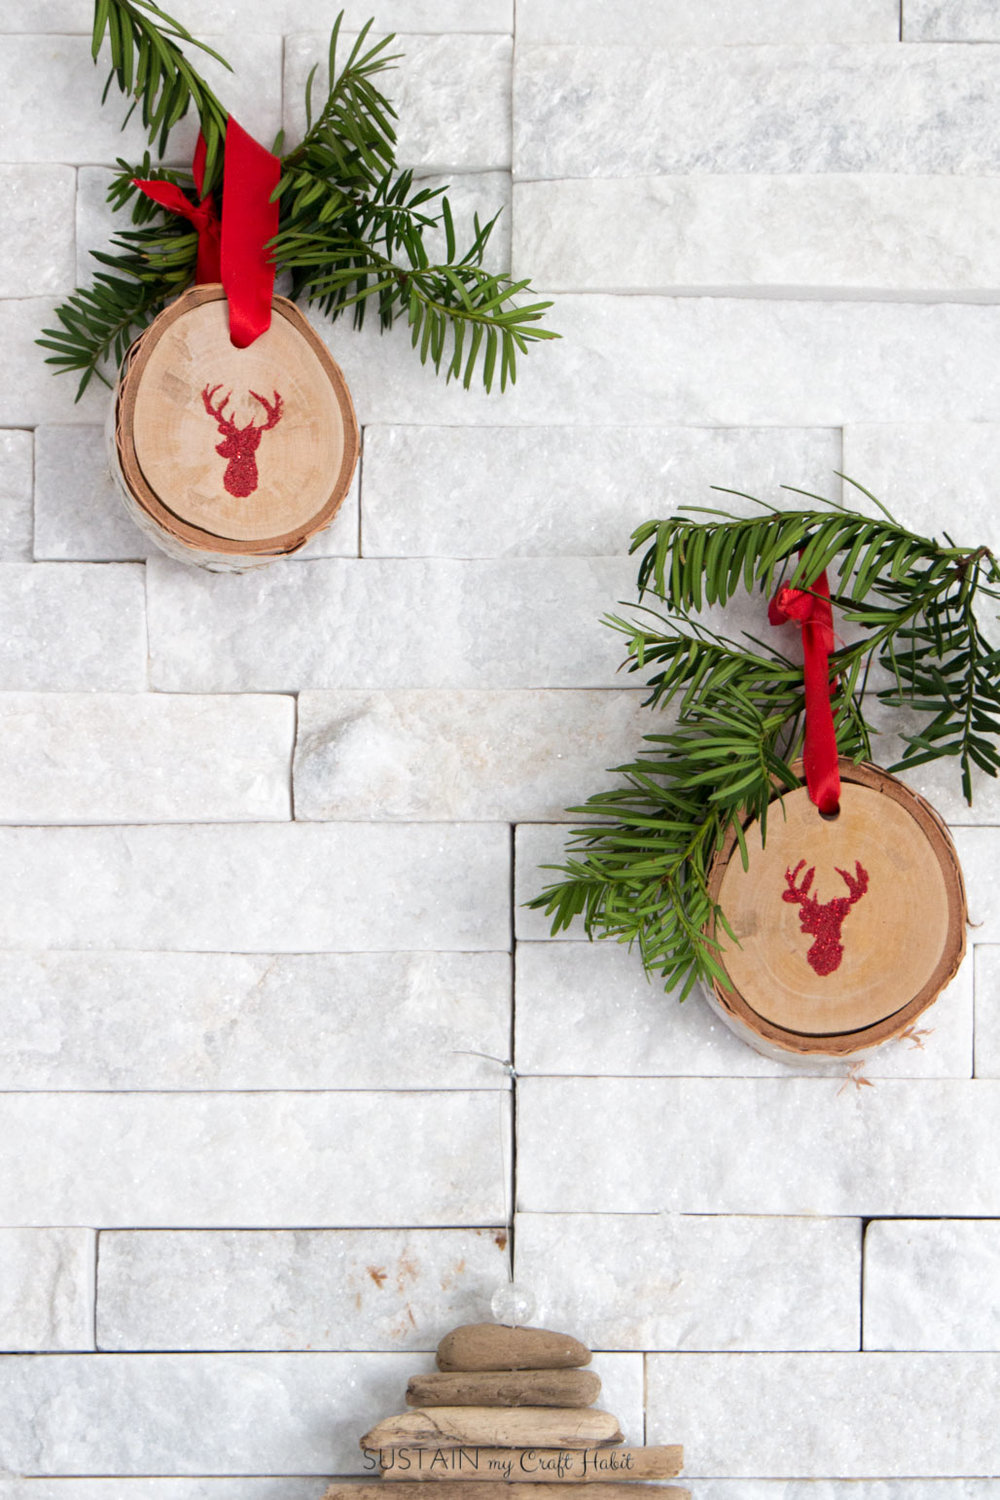 Rustic deer Christmas ornament made with glitter heat embossed onto natural slices of birch branches | Scandi style holiday mantel decorating ideas